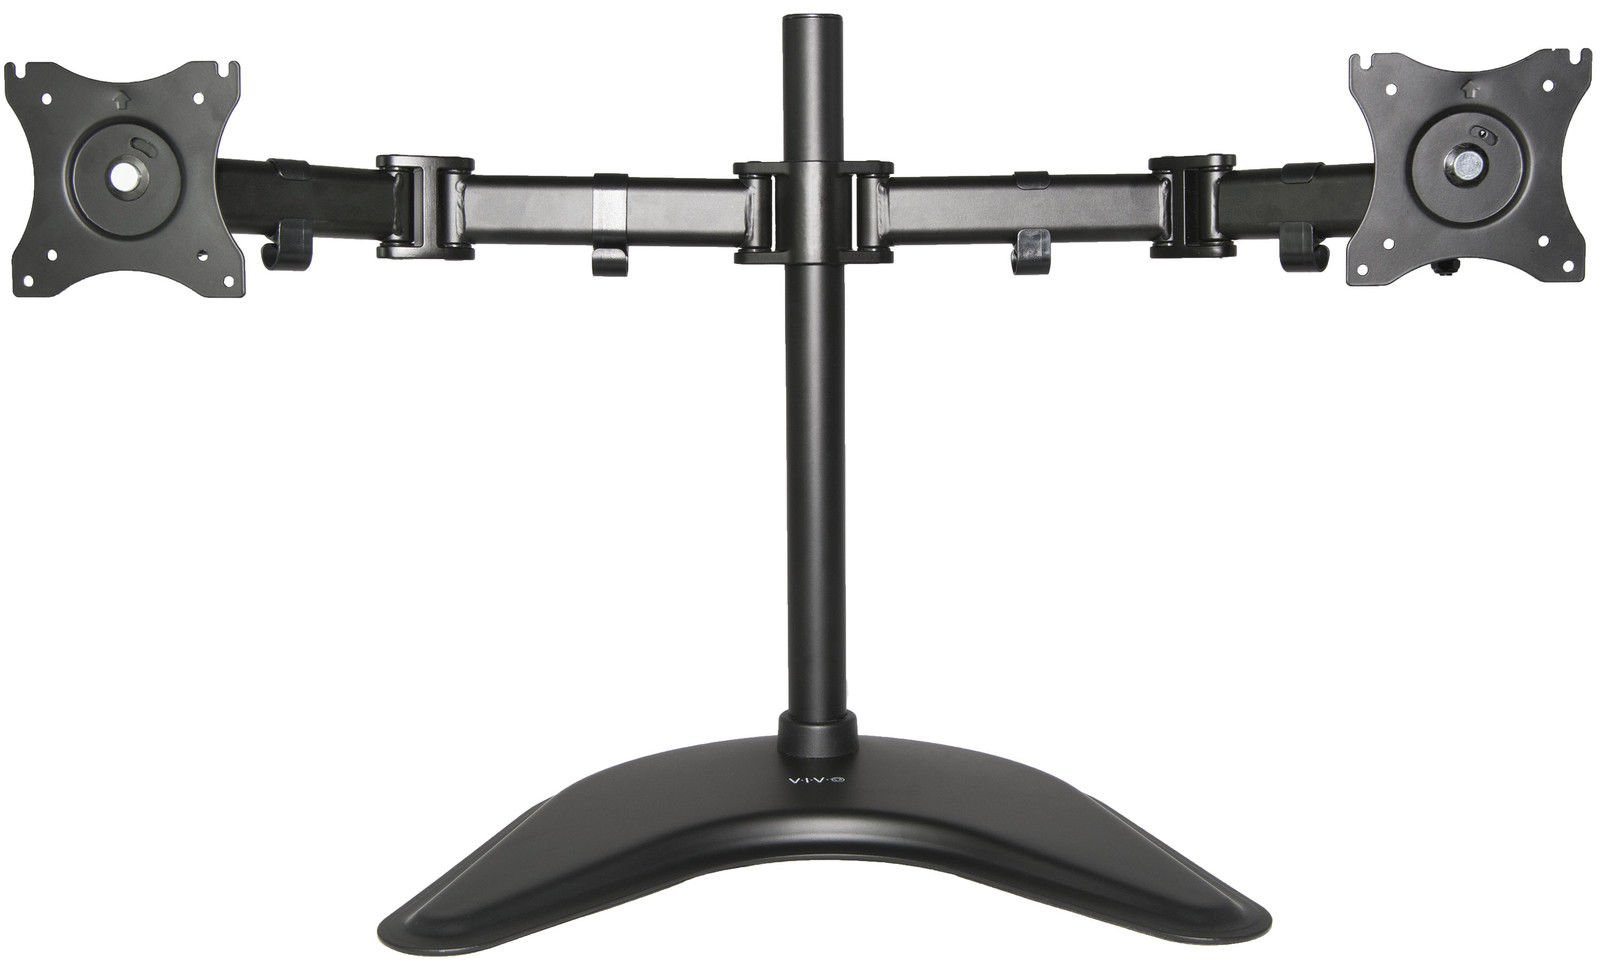 Dual Monitor Mount Fully Adjustable Desk Free Stand for 2 LCD Screens up to 27''